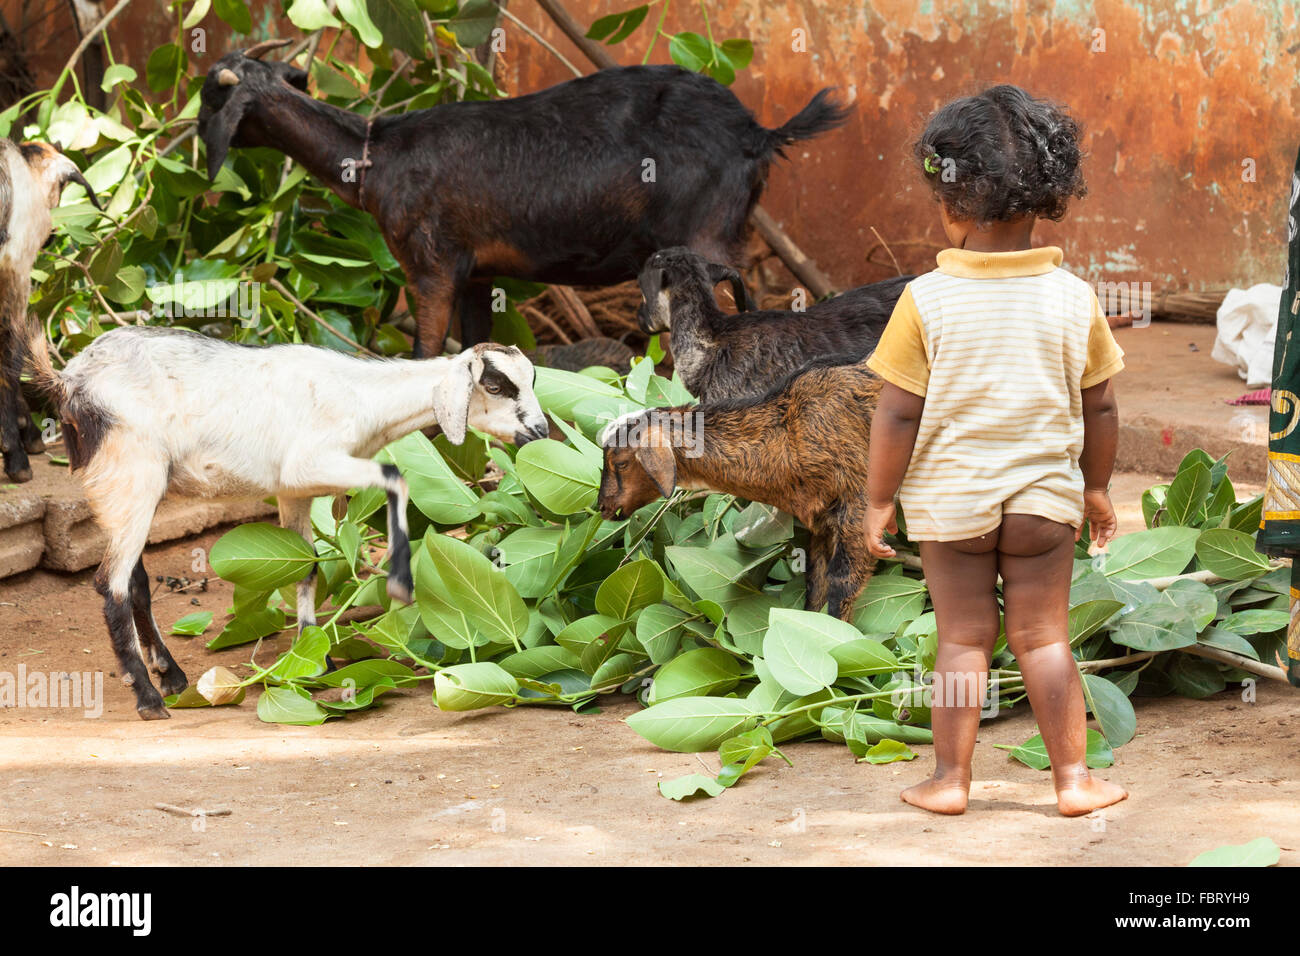 A little girl with kids in remote village - South India. - Stock Image